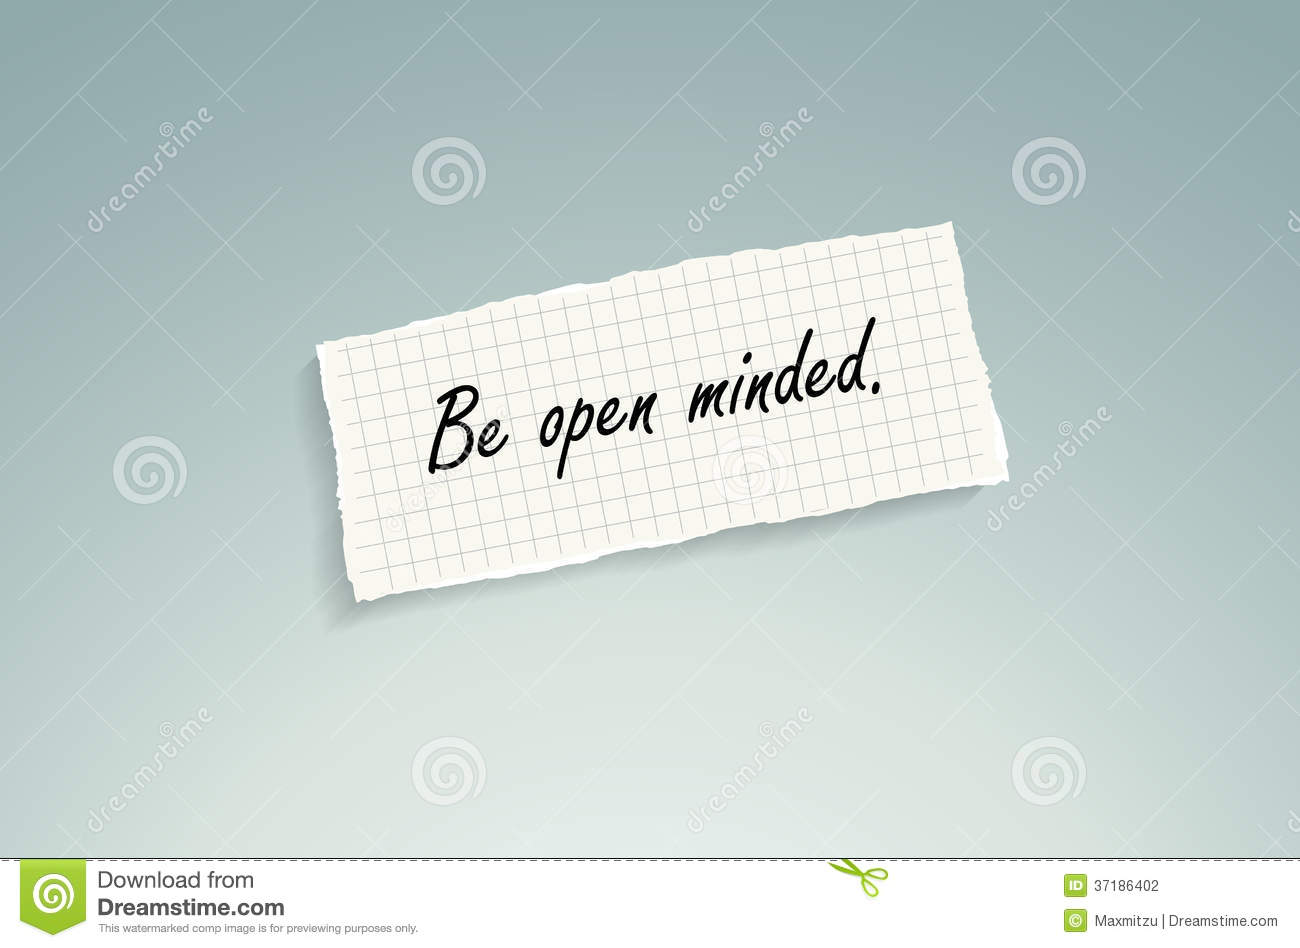 essay on open-mindedness Open-mindedness mary - san deigo, california entered on november 1, 2010  if you enjoyed this essay, please consider making a tax-deductible contribution to this.